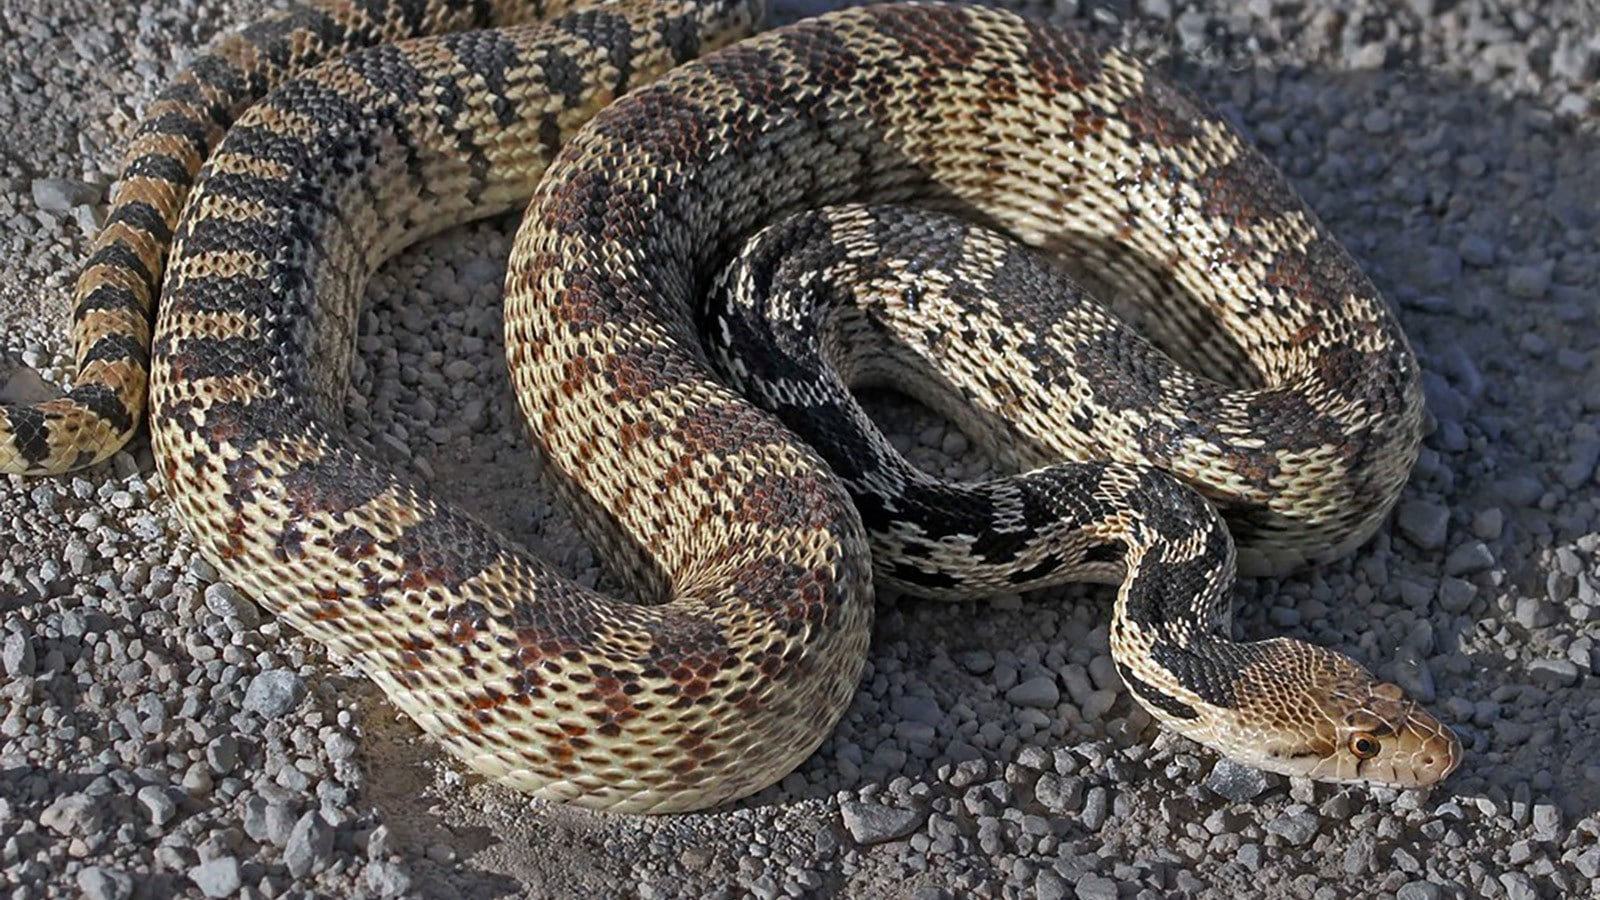 Snakes can sense earthquakes from as far as 75 miles away (121 km) and as many as five days before it actually occurs!